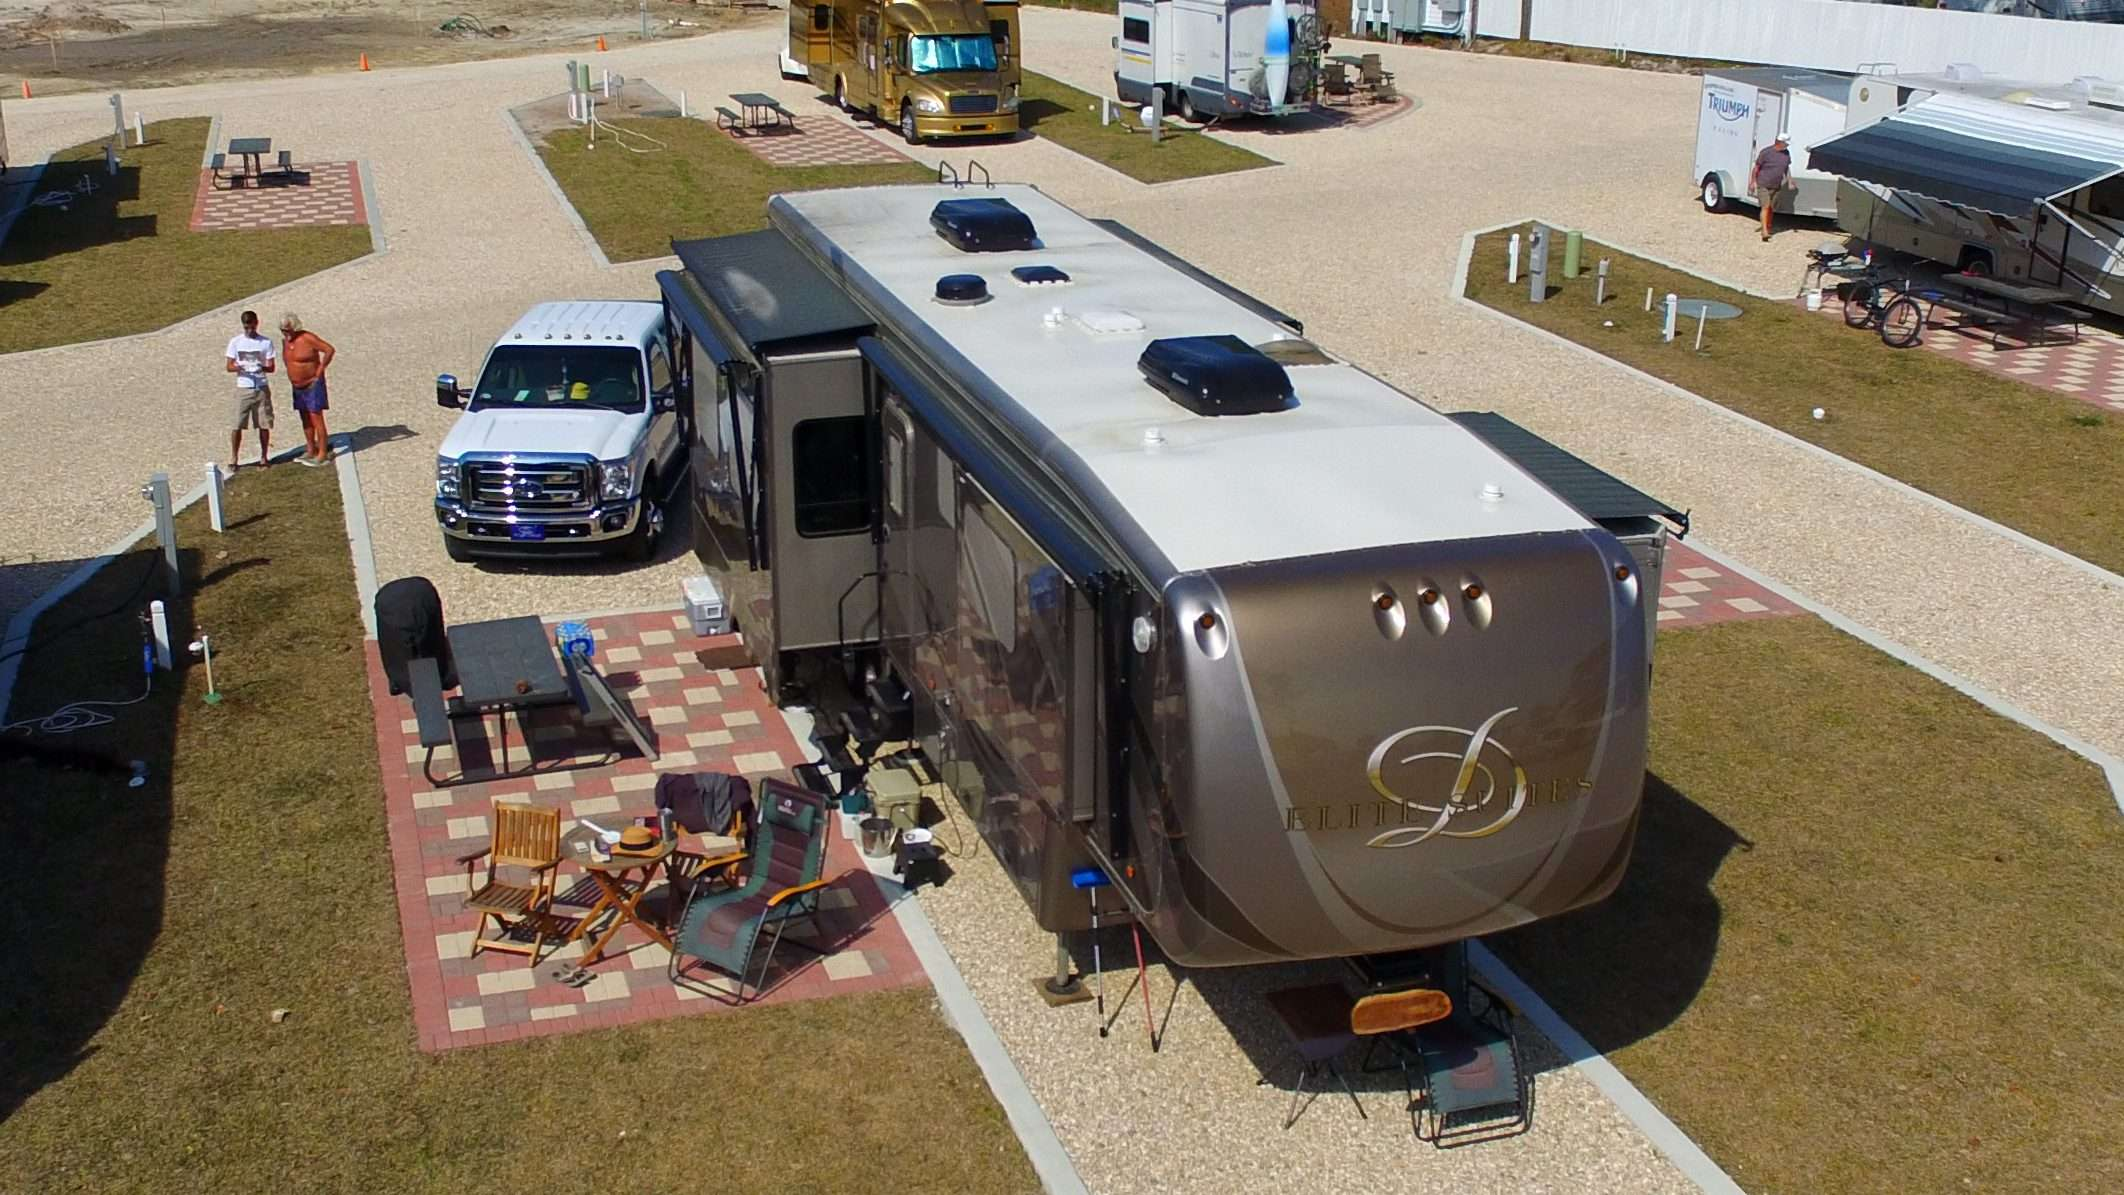 Aerial image of RV parked. Heat pumps installed on the roof of the RV.